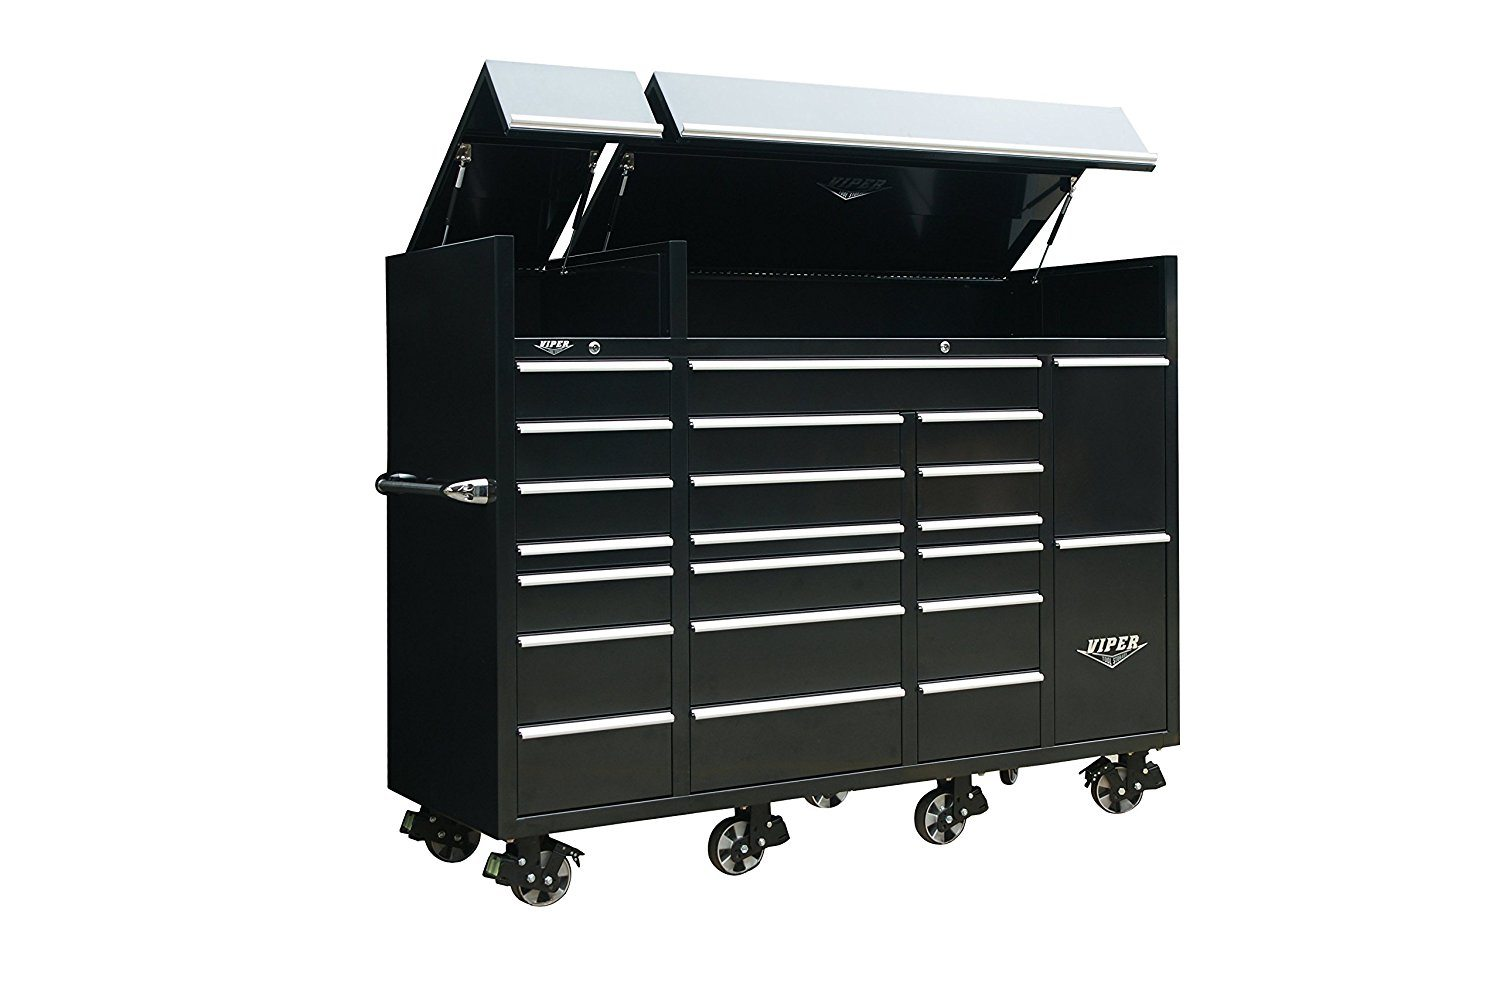 Viper Tool Storage VXXL86UBBL 86 22 Drawer Review